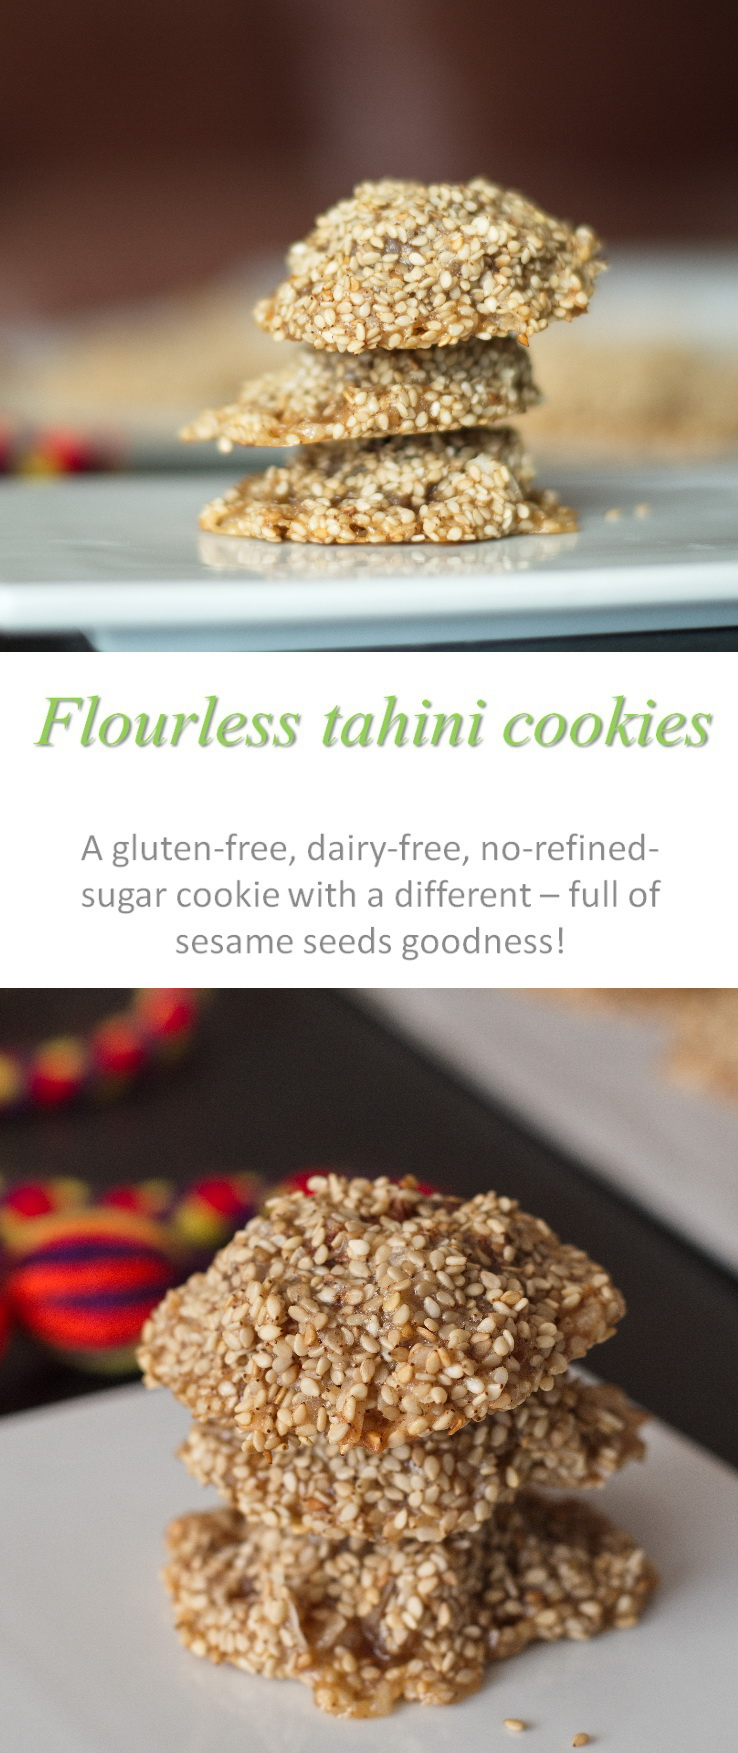 A gluten-free, dairy-free, refined-sugar-free tahini cookie that reminds you of the Middle East. #tahini